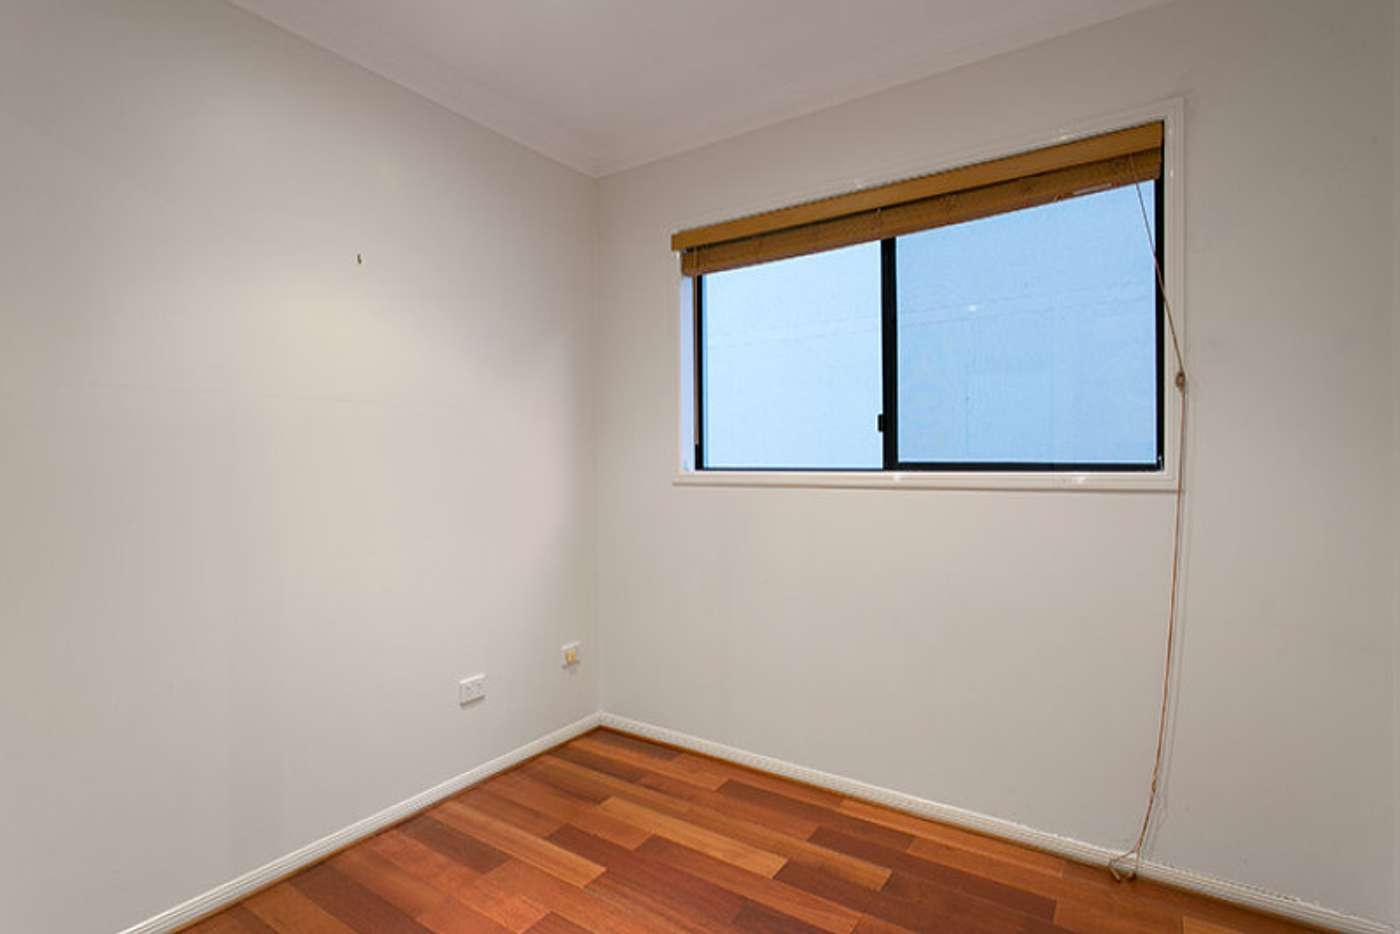 Seventh view of Homely apartment listing, 309/36 Macdonald Street, Kangaroo Point QLD 4169